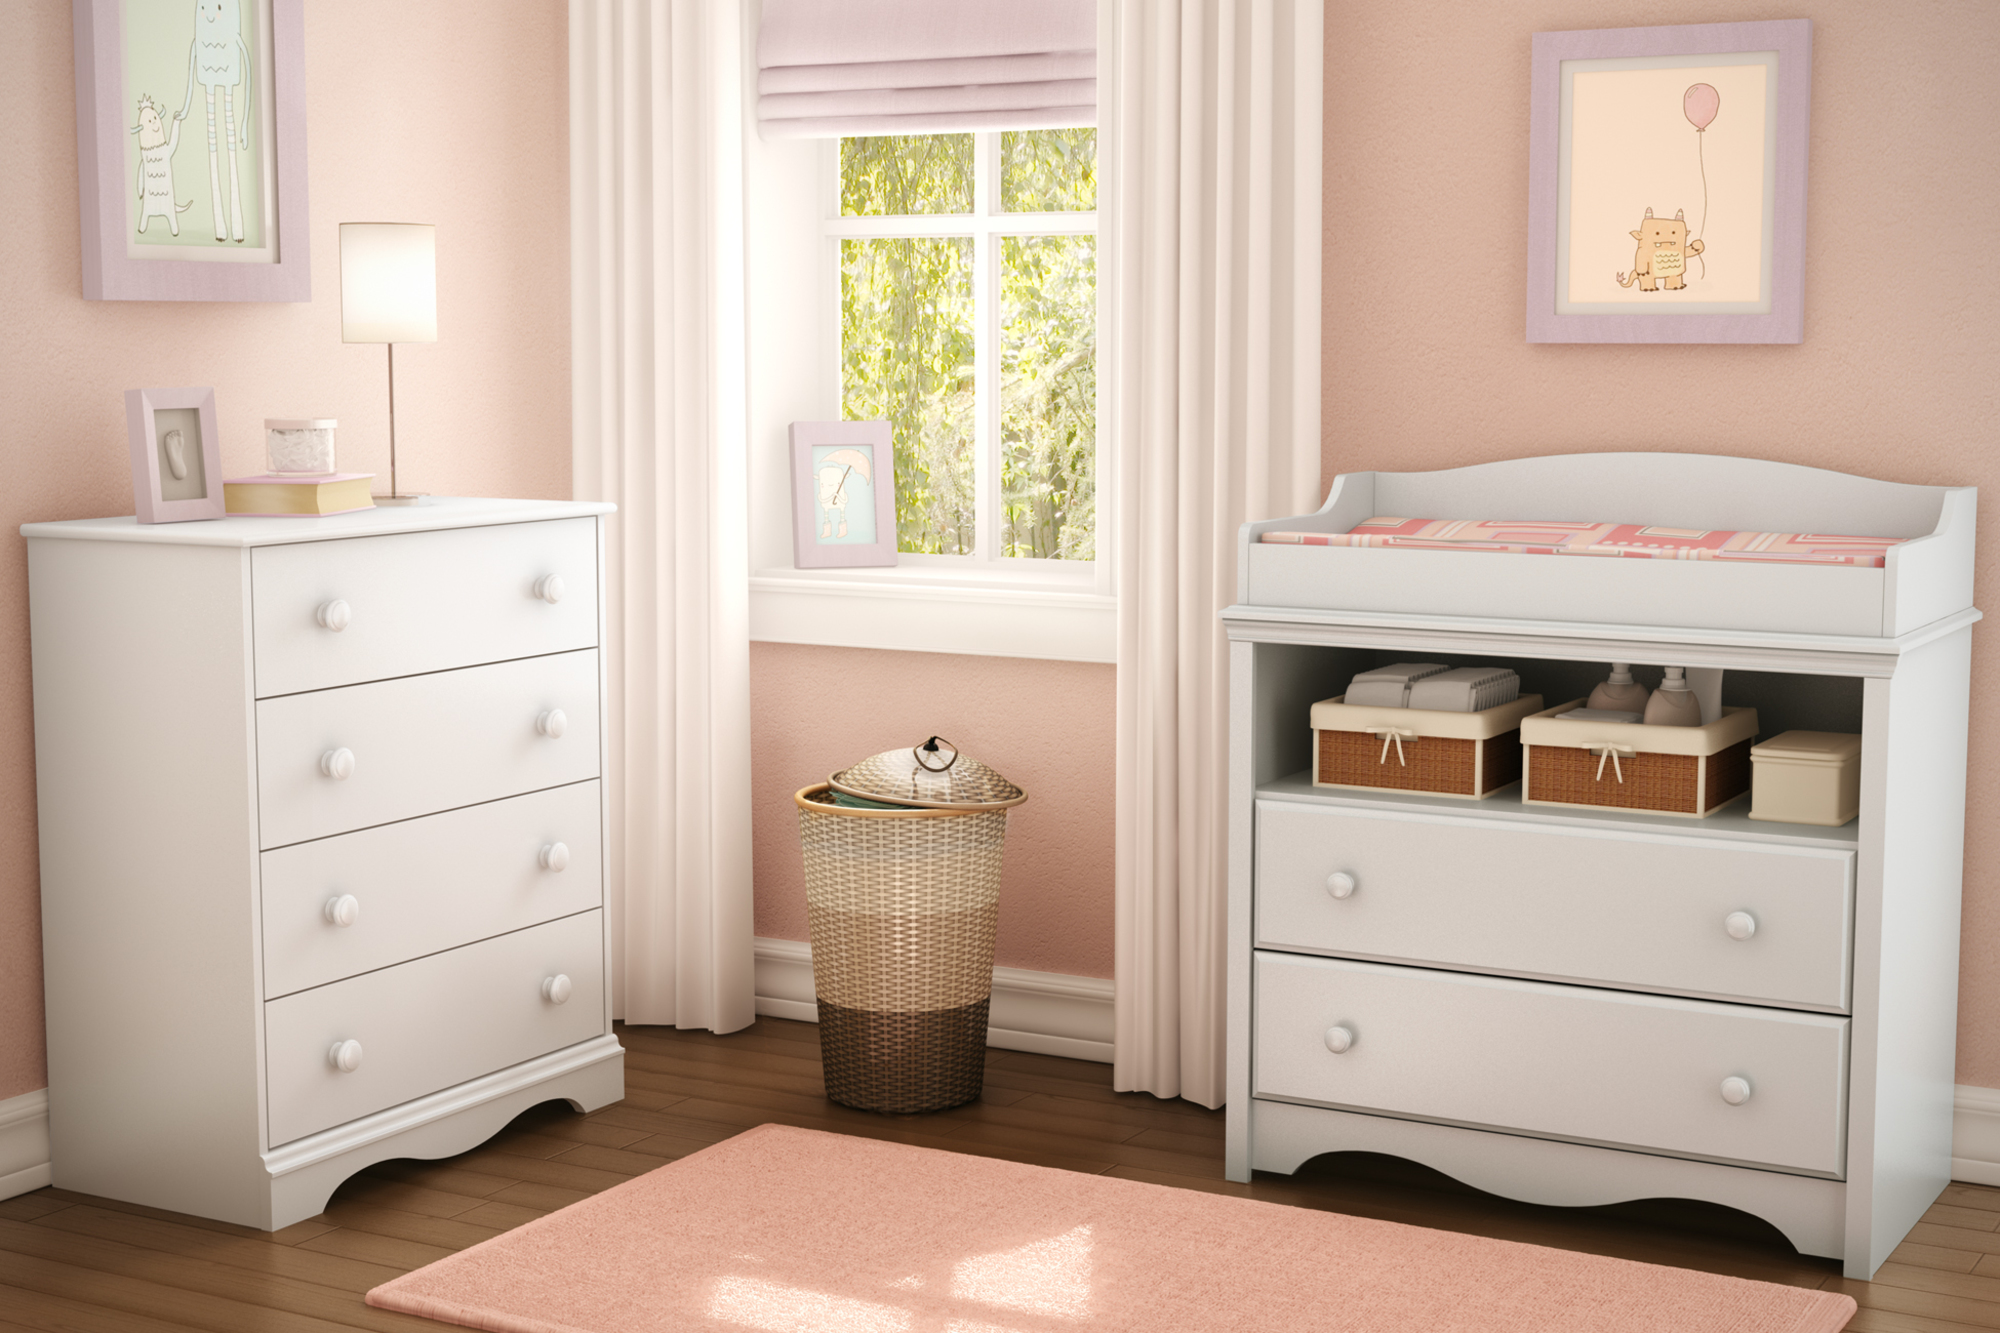 Wonderful South Shore Angel Changing Table And 4 Drawer Chest Set, White Image 2 Of